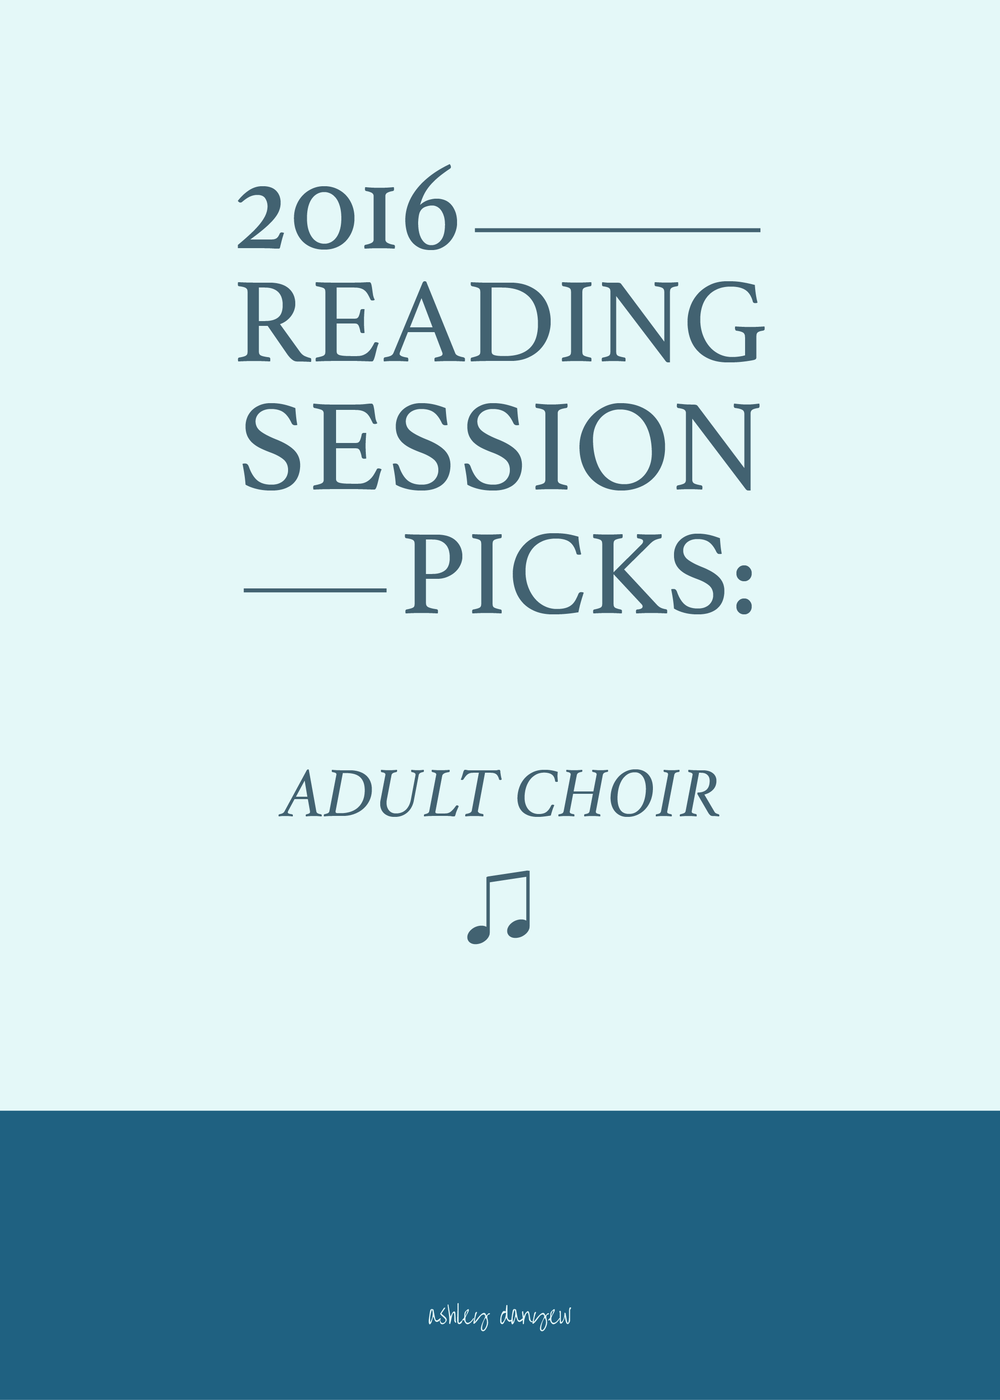 2016-Reading-Session-Picks-Adult-Choir-01.png